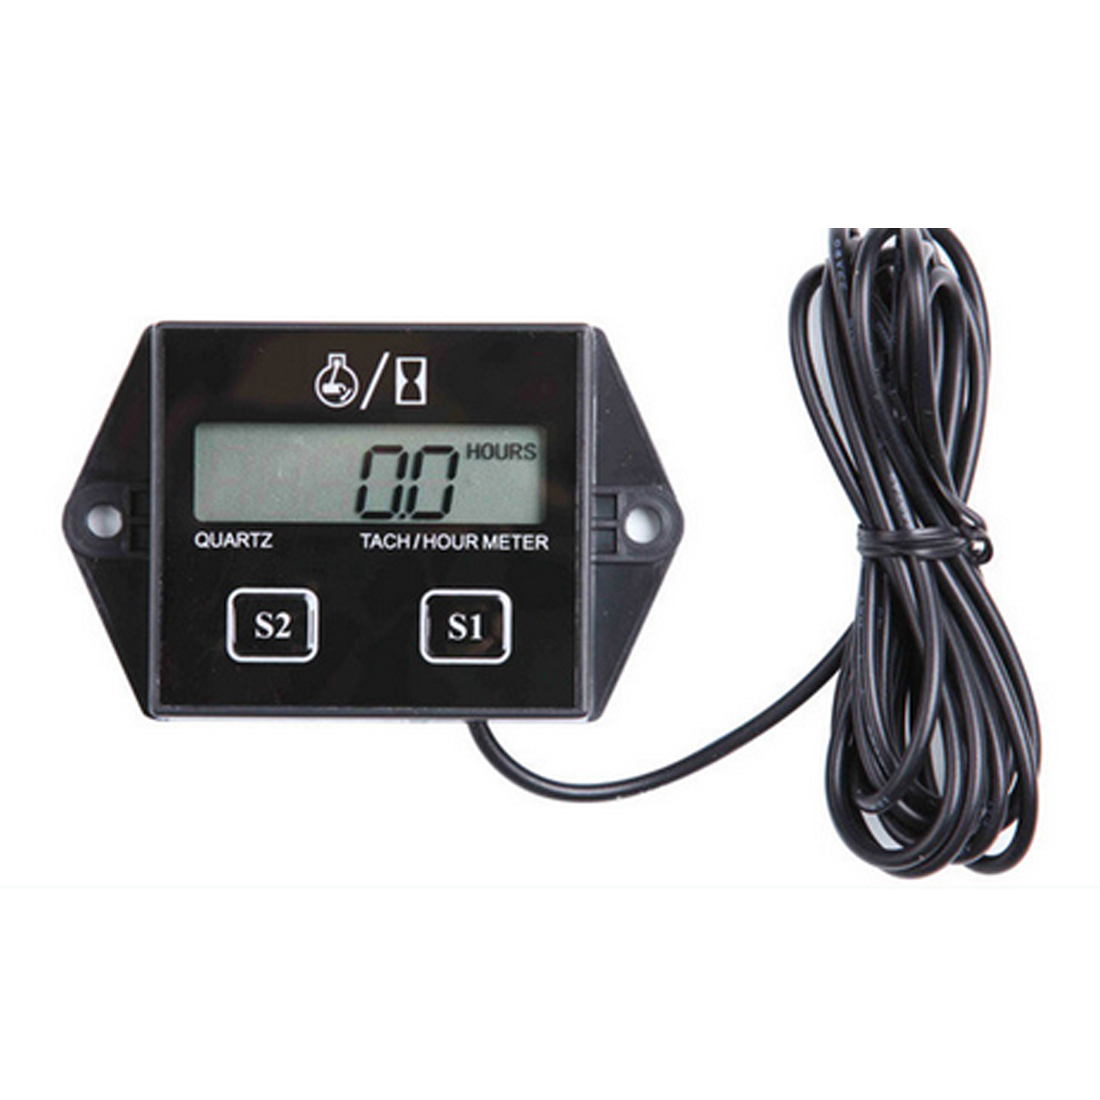 Digital Tachometer Engine Tach Hour Meter Gauge Inductive For Motorcycle Motor Boat Car Stroke Engine LCD Display